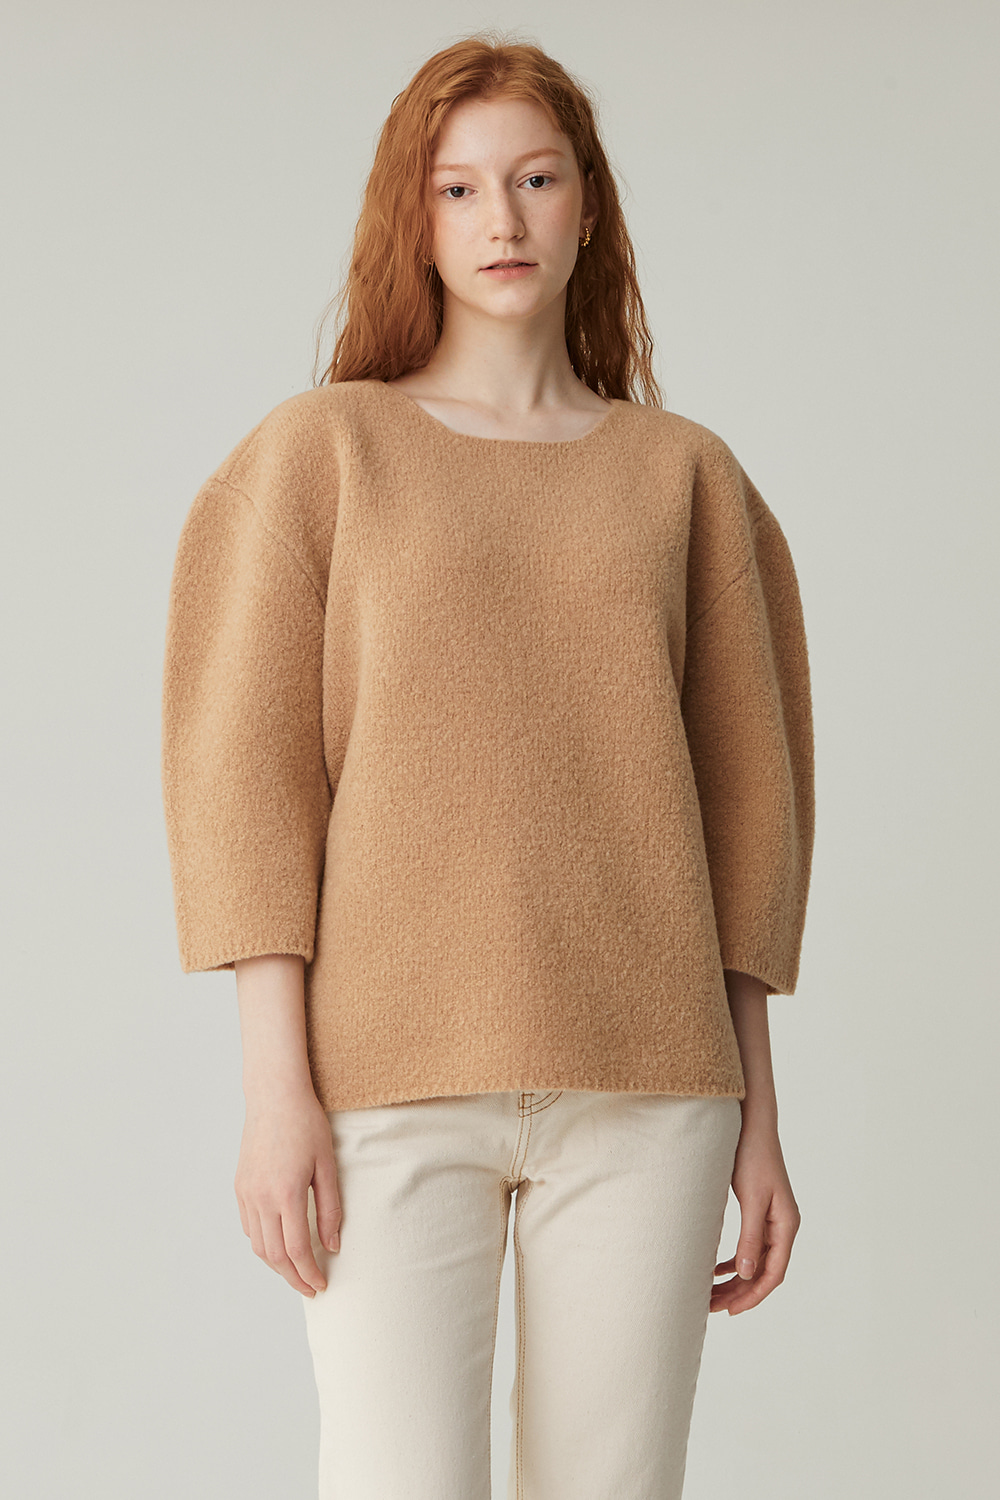 CHAGALL BOUCLE KNIT (CAMEL)